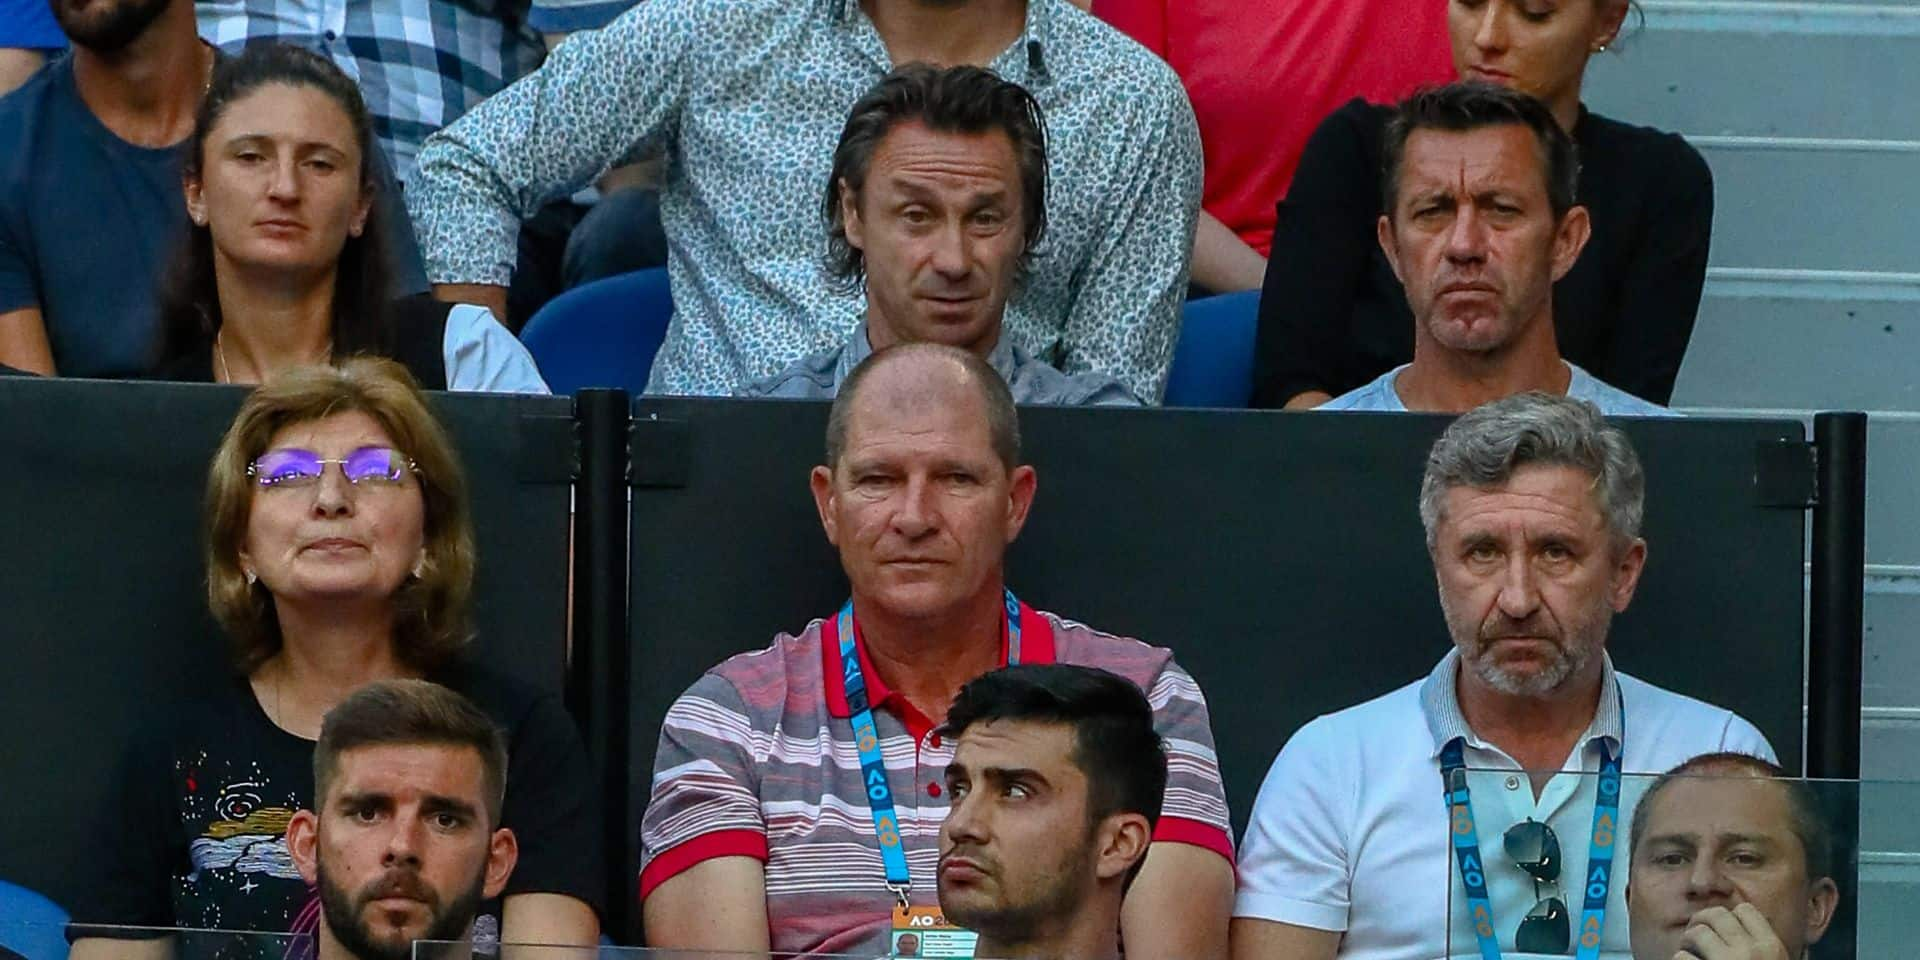 Goffin's former coach Thierry Van Cleemput (upper R) attends at the 'Australian Open' tennis Grand Slam, Monday 21 January 2019 in Melbourne Park, Melbourne, Australia. This first grand slam of the season will be taking place from 14 to 27 January. BELGA PHOTO PATRICK HAMILTON